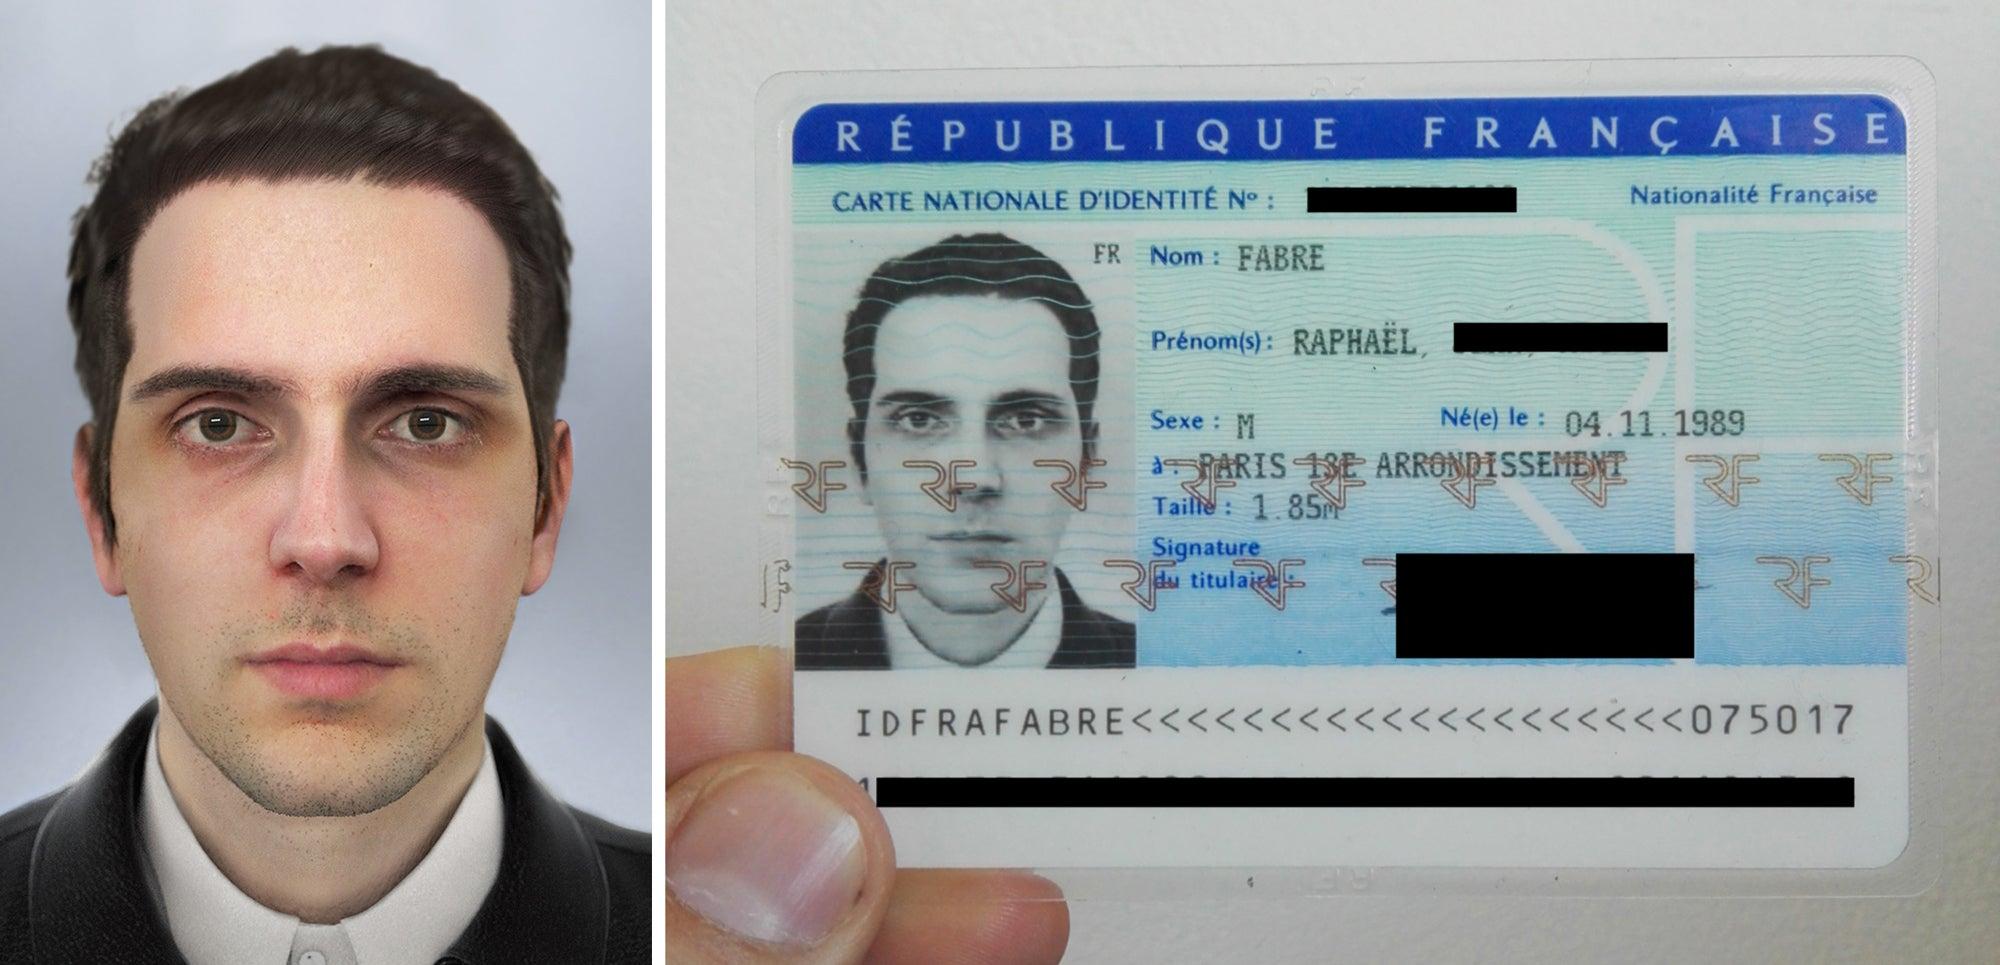 Says He Artist National Headshot Computer-generated Id A Using Received French Card